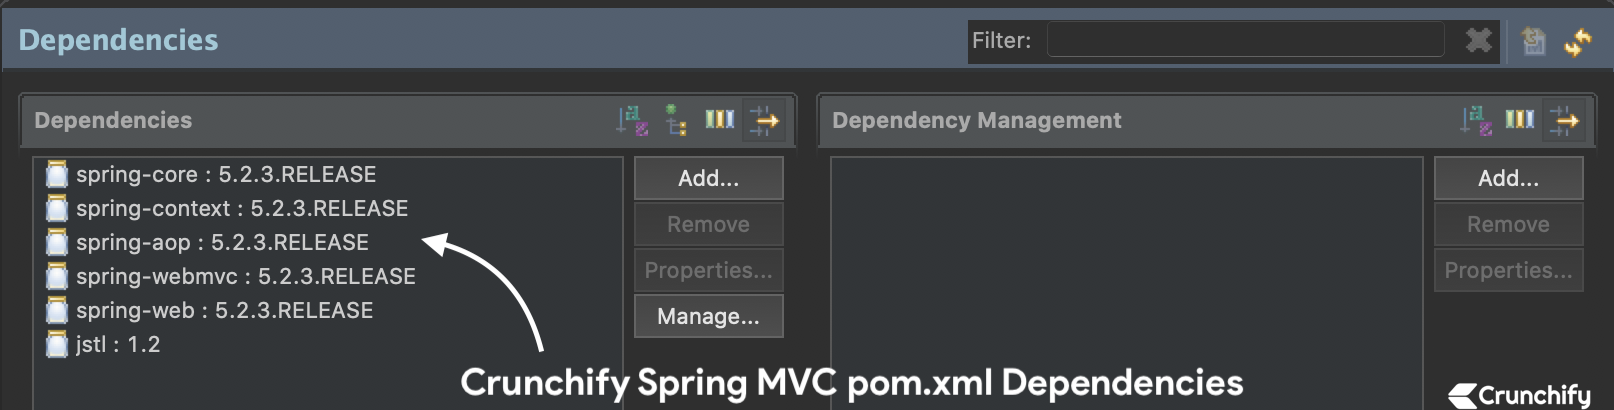 Crunchify Spring MVC pom.xml Dependencies